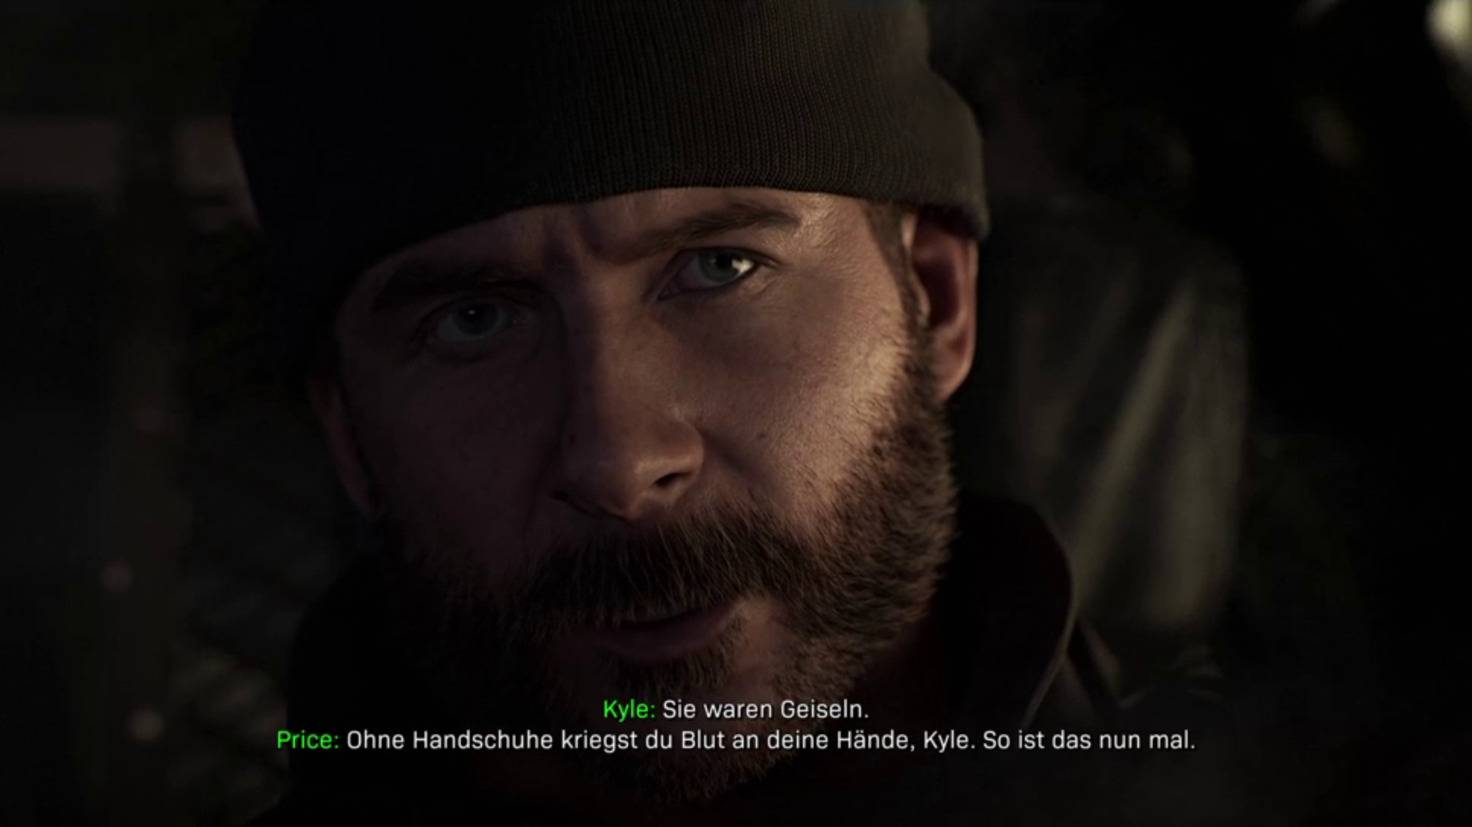 call-of-duty-modern-warfare-captain-price